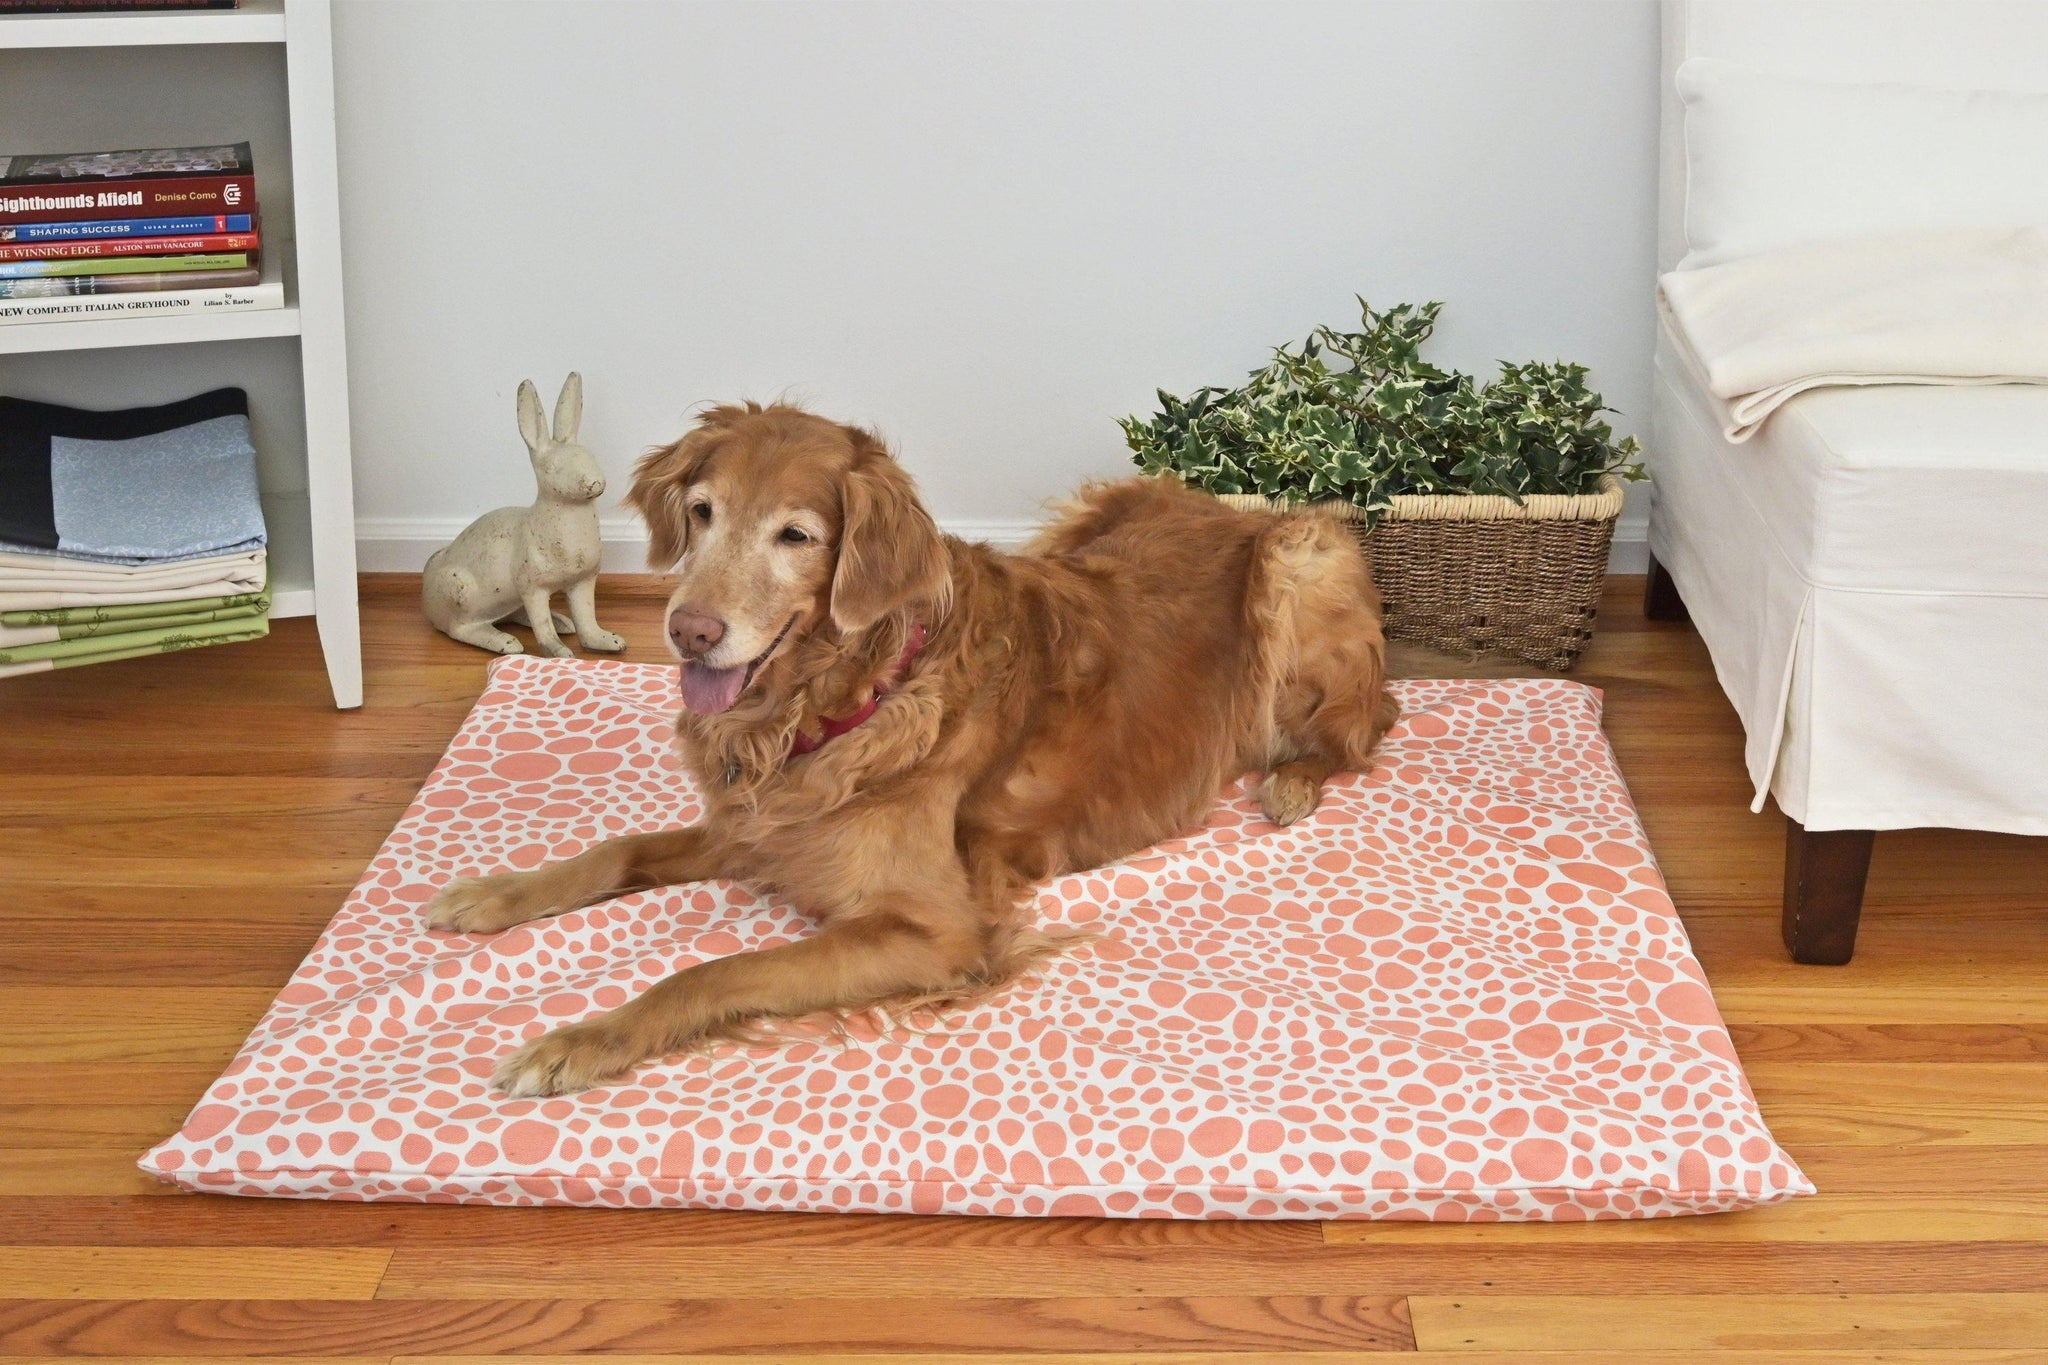 Golden retriever on a coral colored organic dog mat